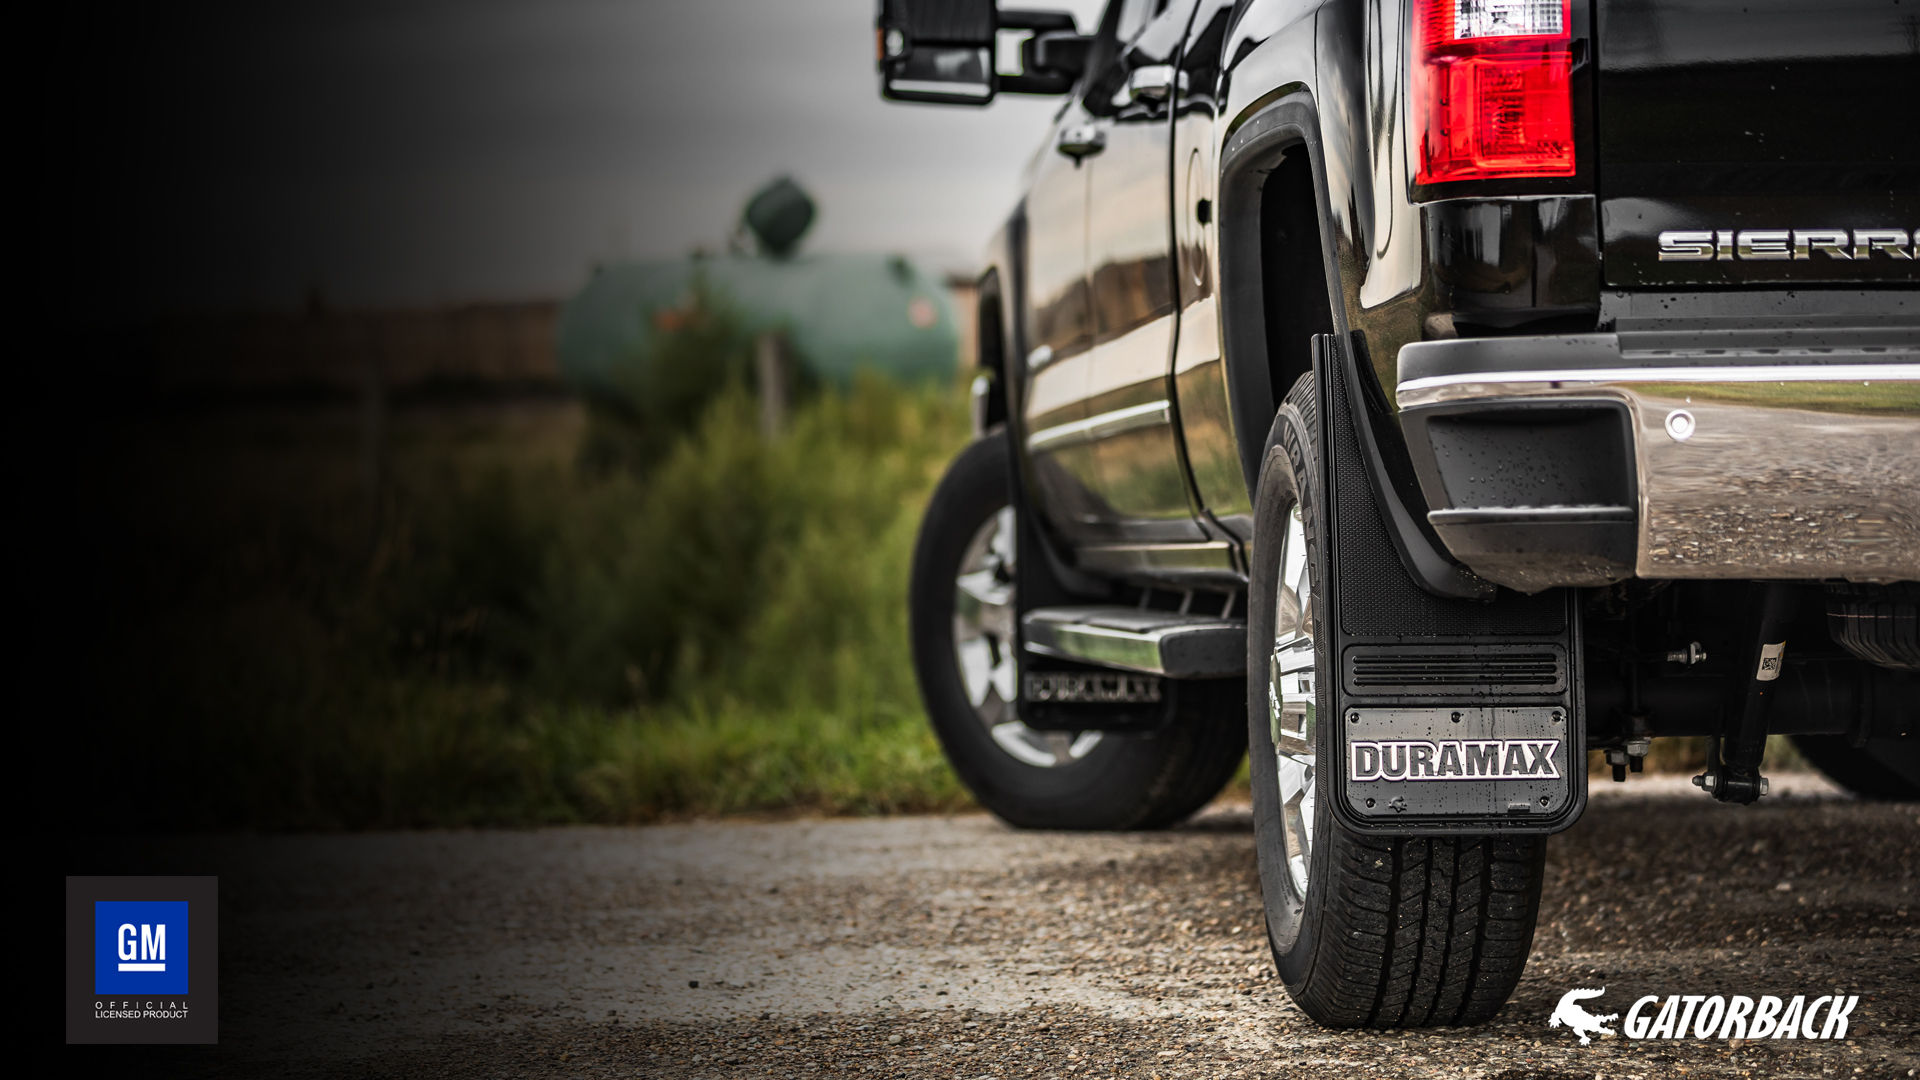 Truck Hardware - Manufacturer of Gatorback Mud Flaps